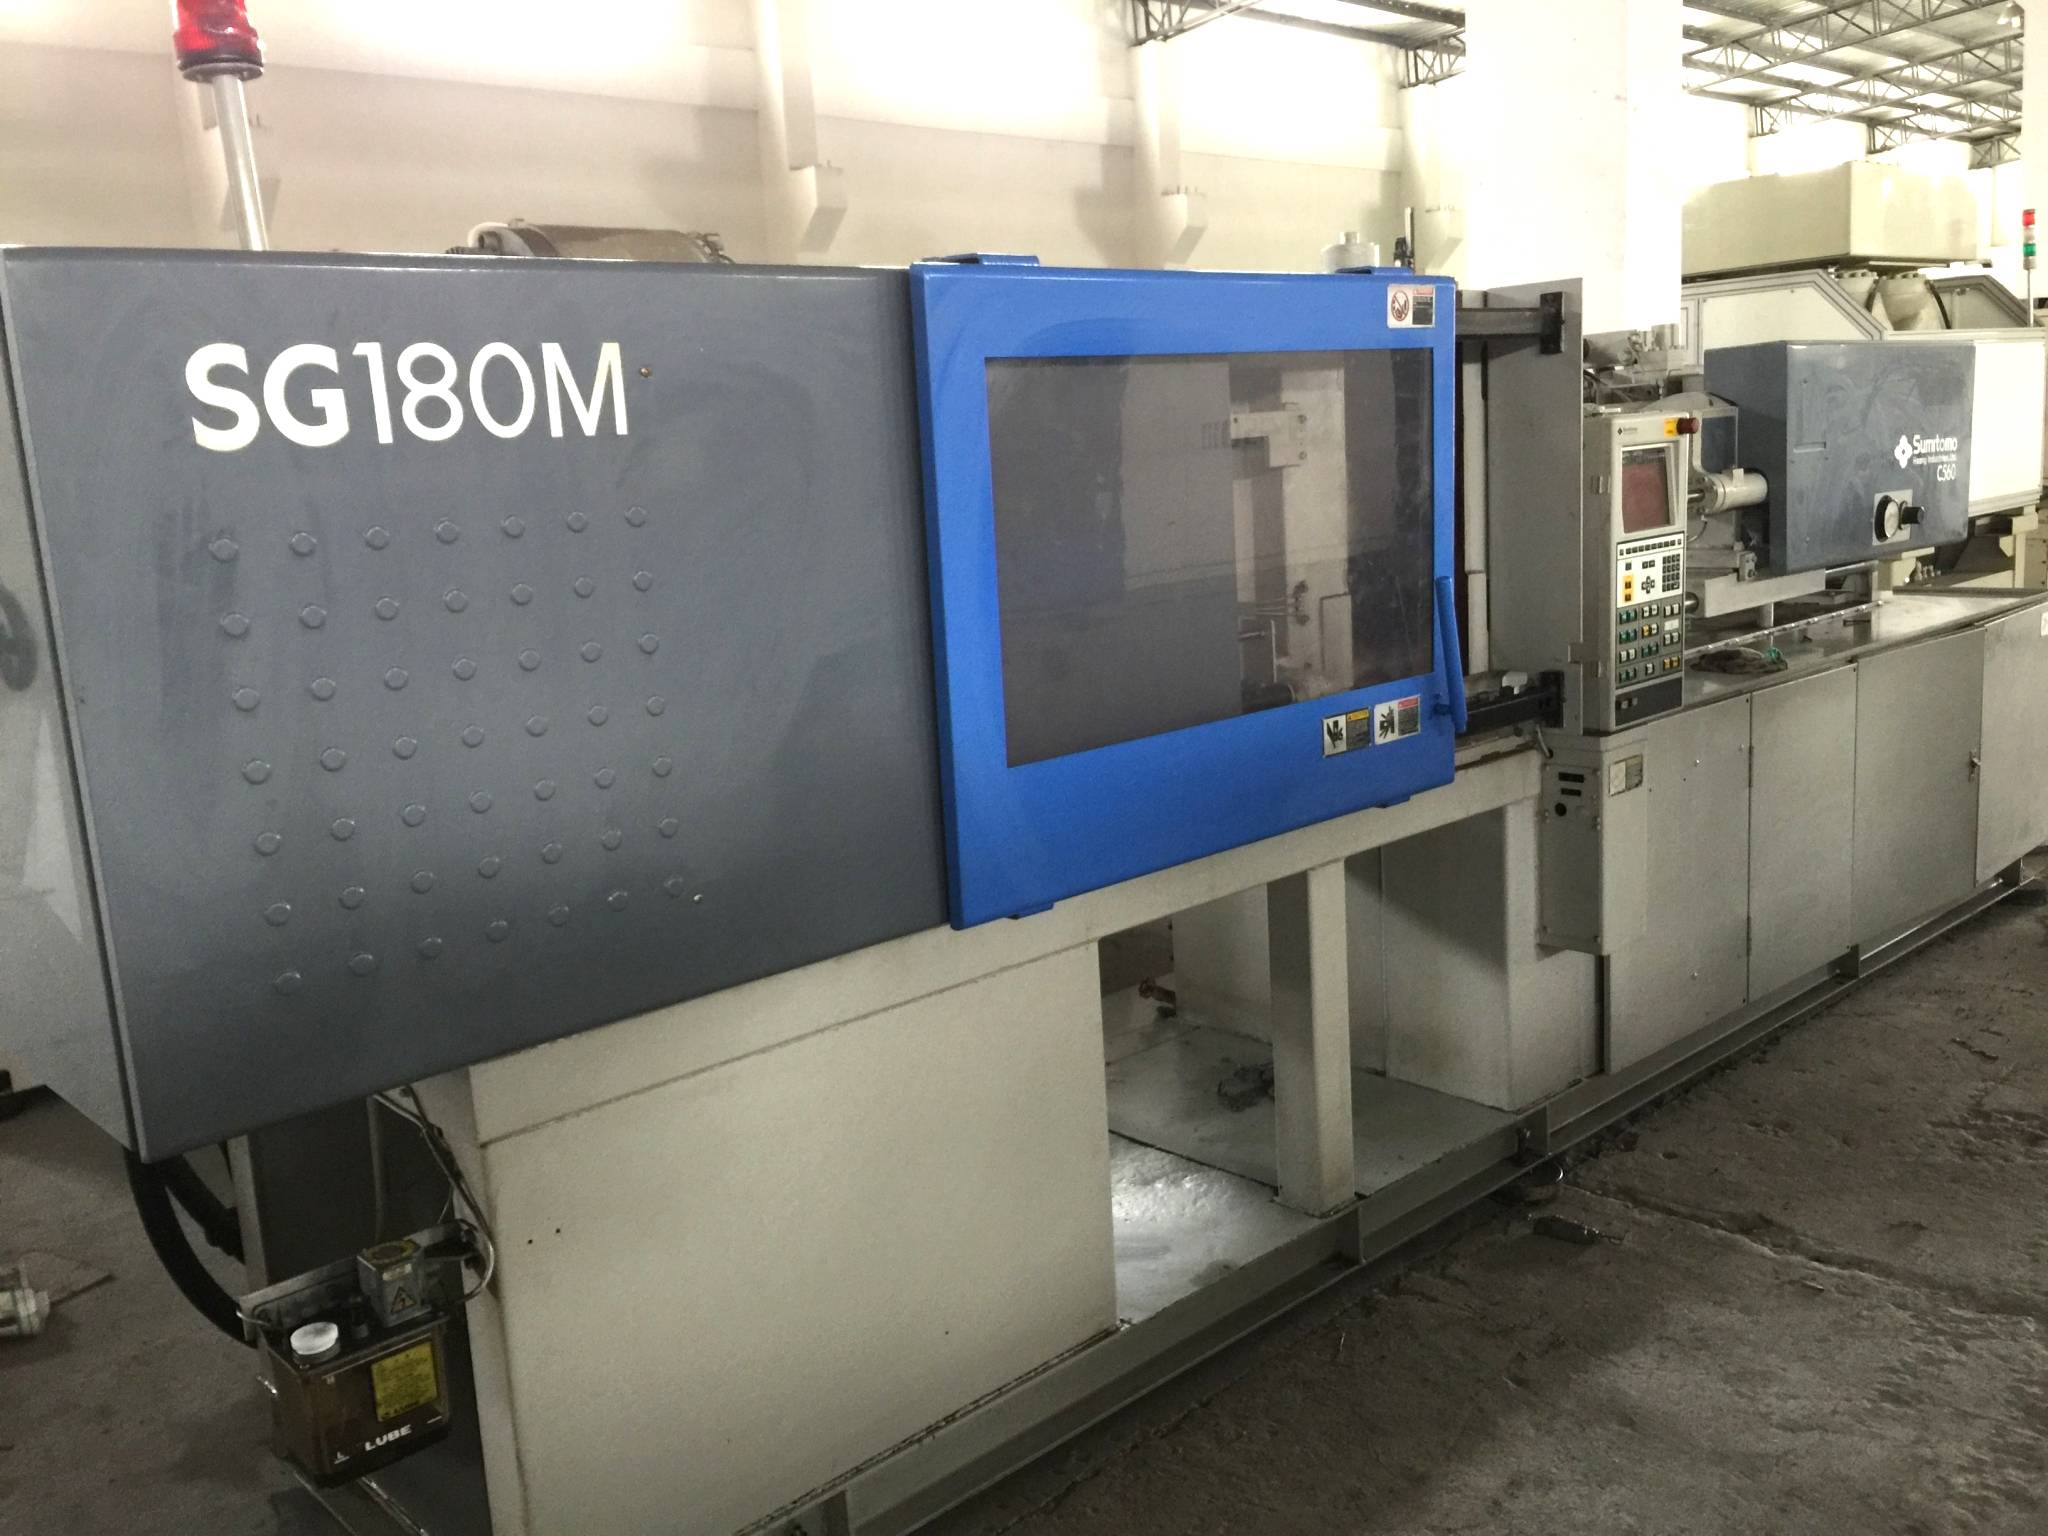 Sumitomo 180t SG180M High Speed used Injection Molding Machine Featured Image